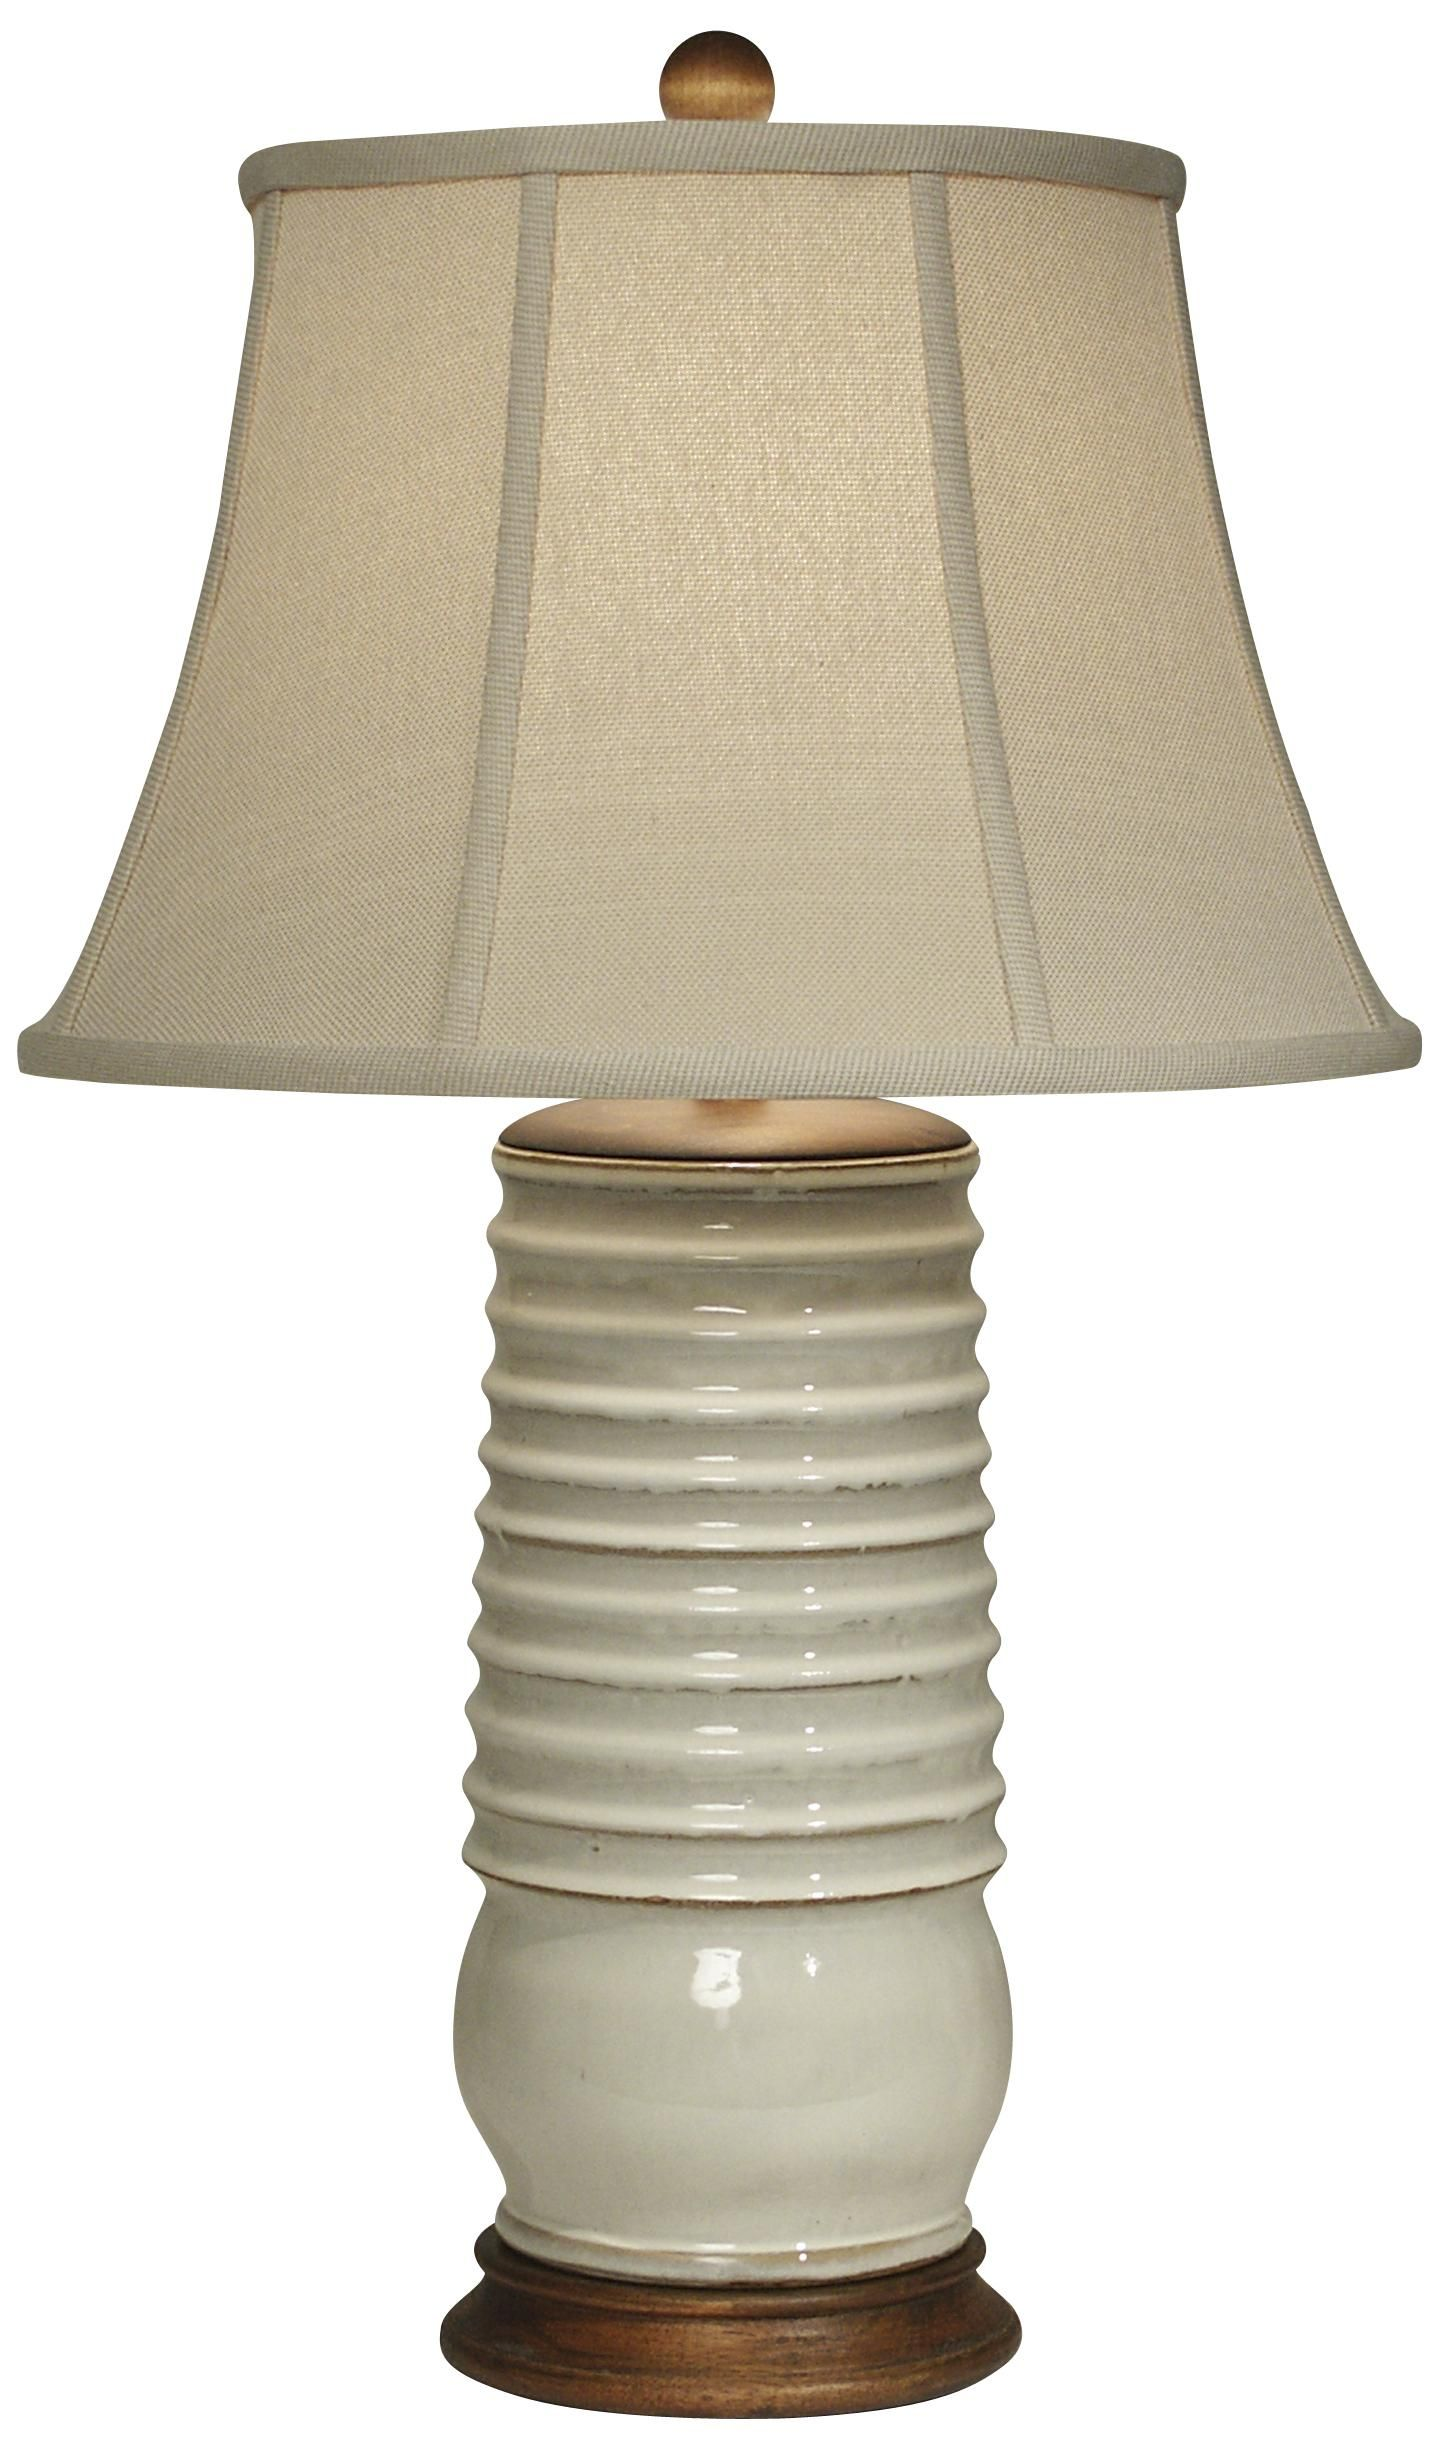 Adam S Rib Ivory Pottery Table Lamp By The Natural Light F9407 Lamps Plus Lamp Table Lamp White Lamp Base